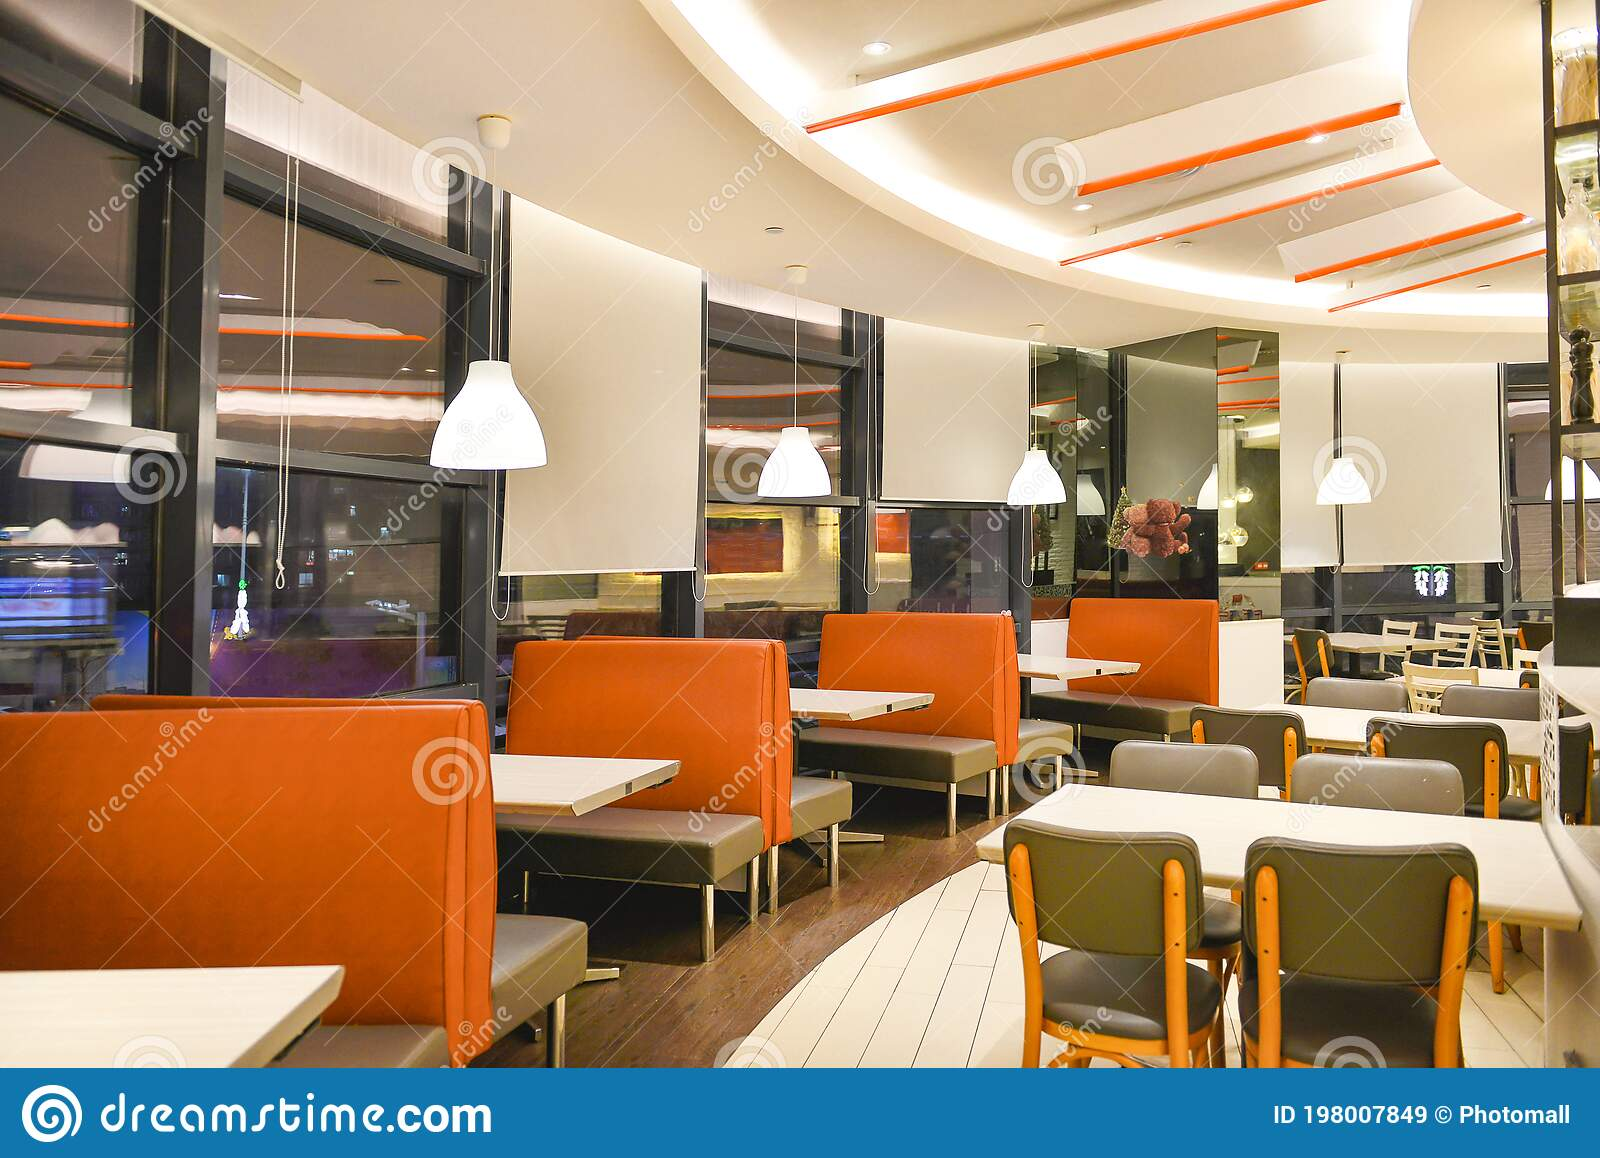 173 440 Restaurant Interior Photos Free Royalty Free Stock Photos From Dreamstime